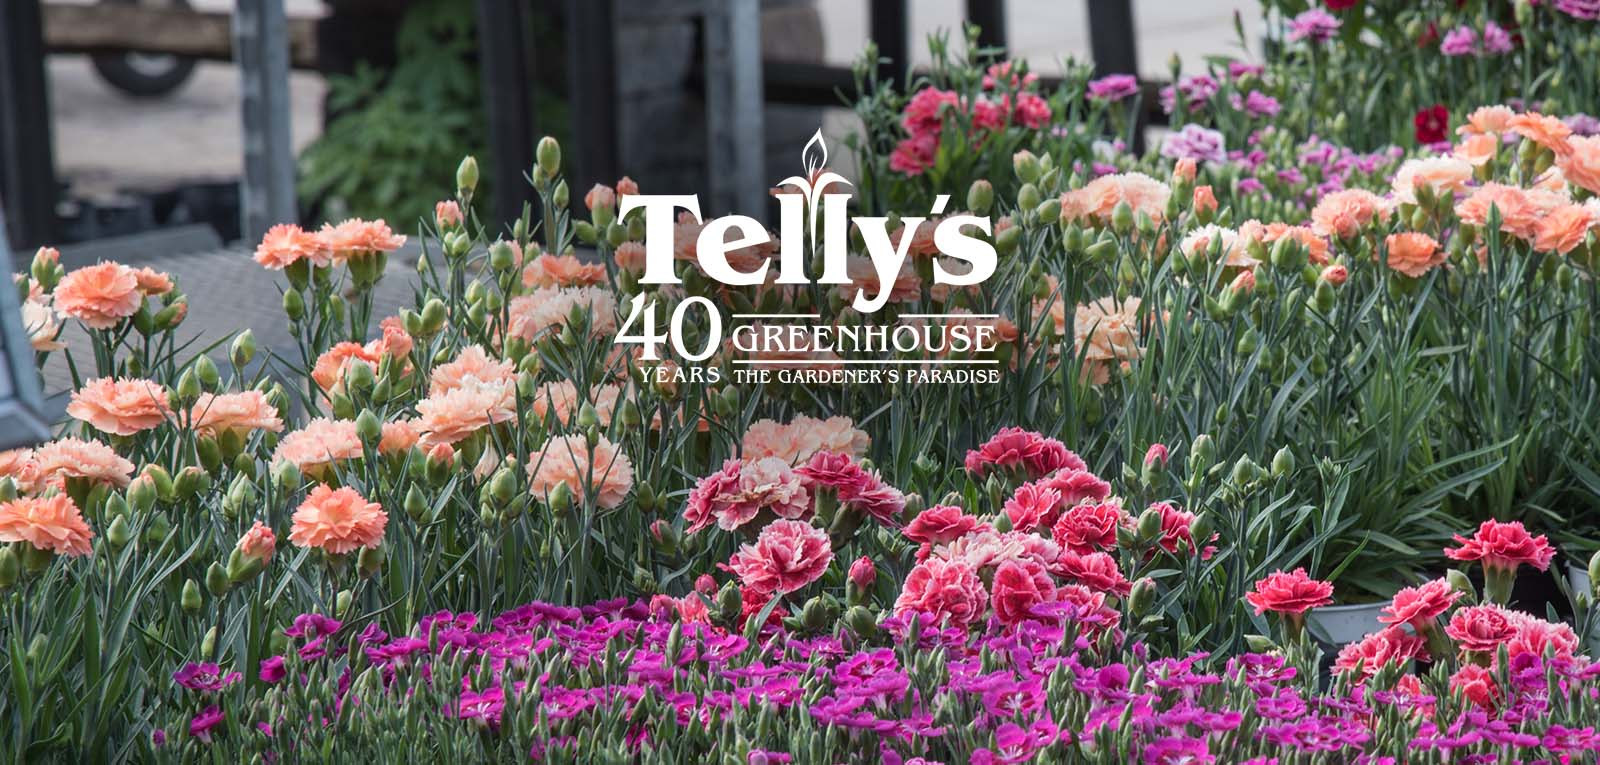 Customer reviews Telly s greenhouse and garden center